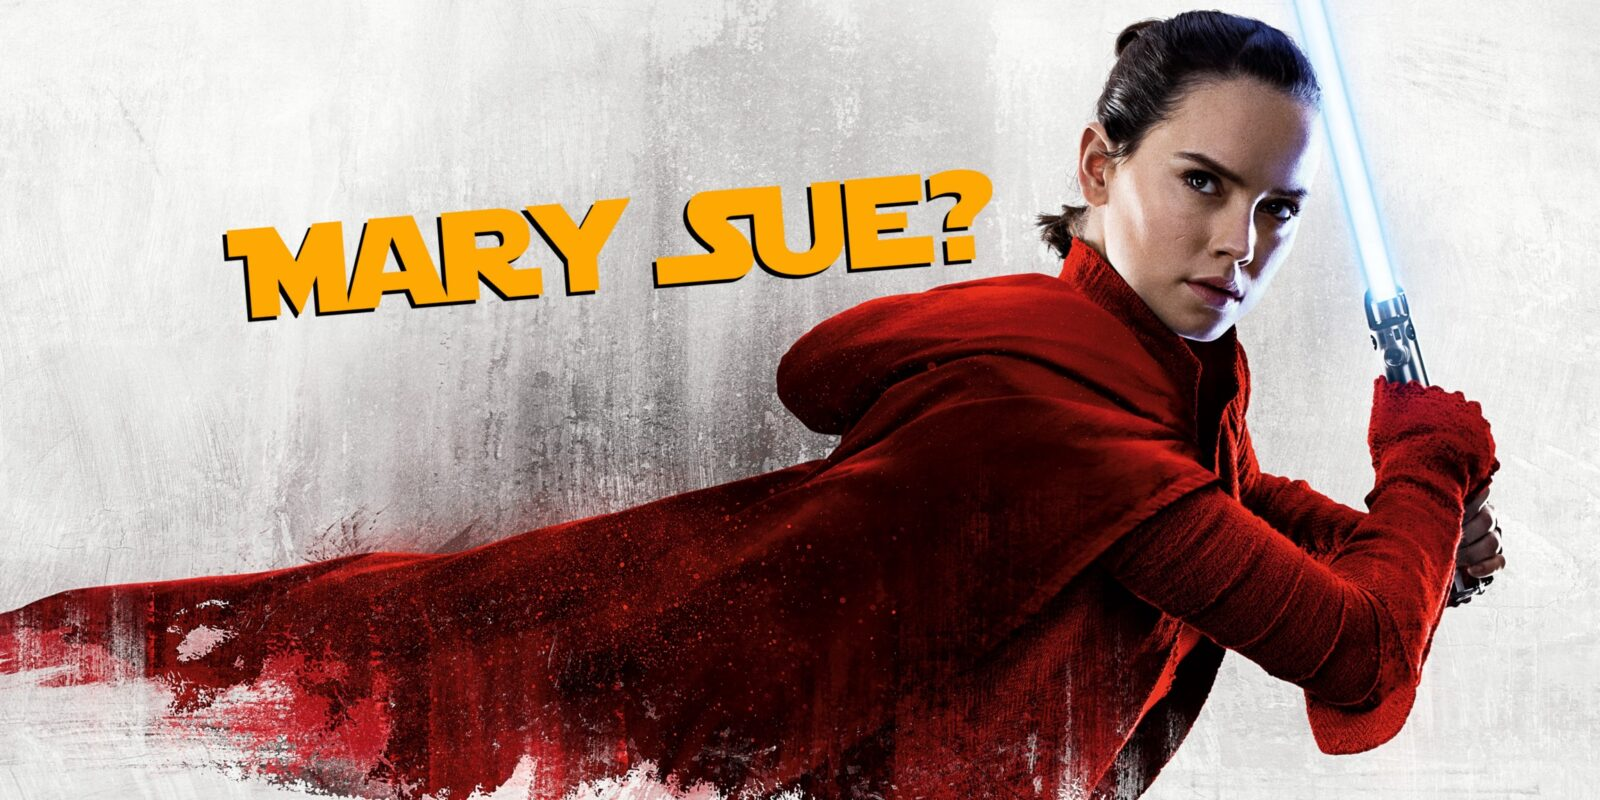 storycraft  is it wrong or sexist to think rey is a  u0026 39 mary